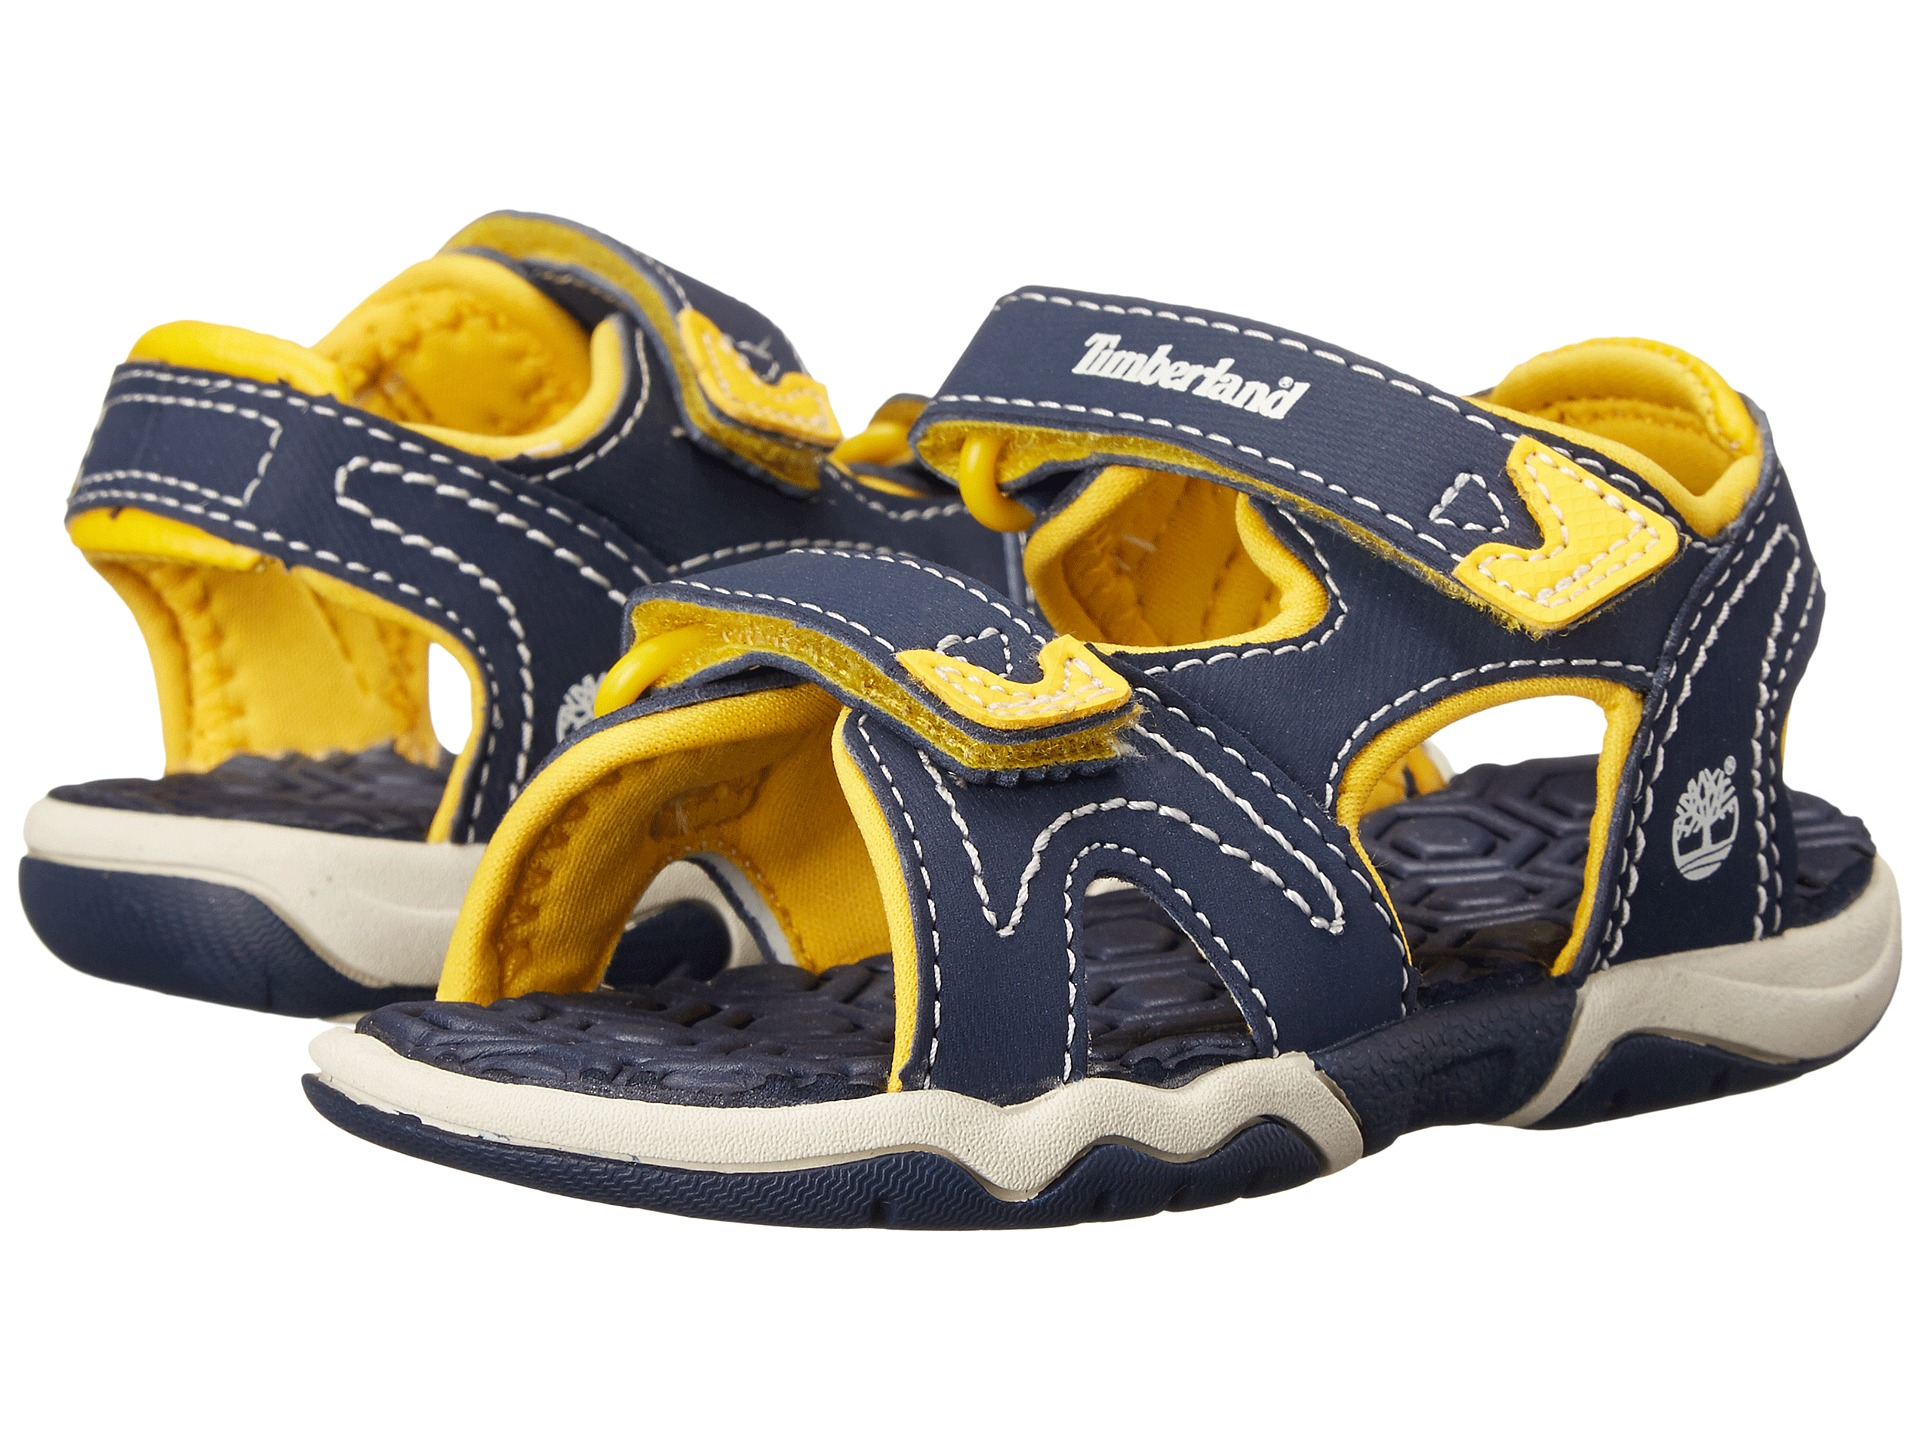 timberland sandals toddler size 6